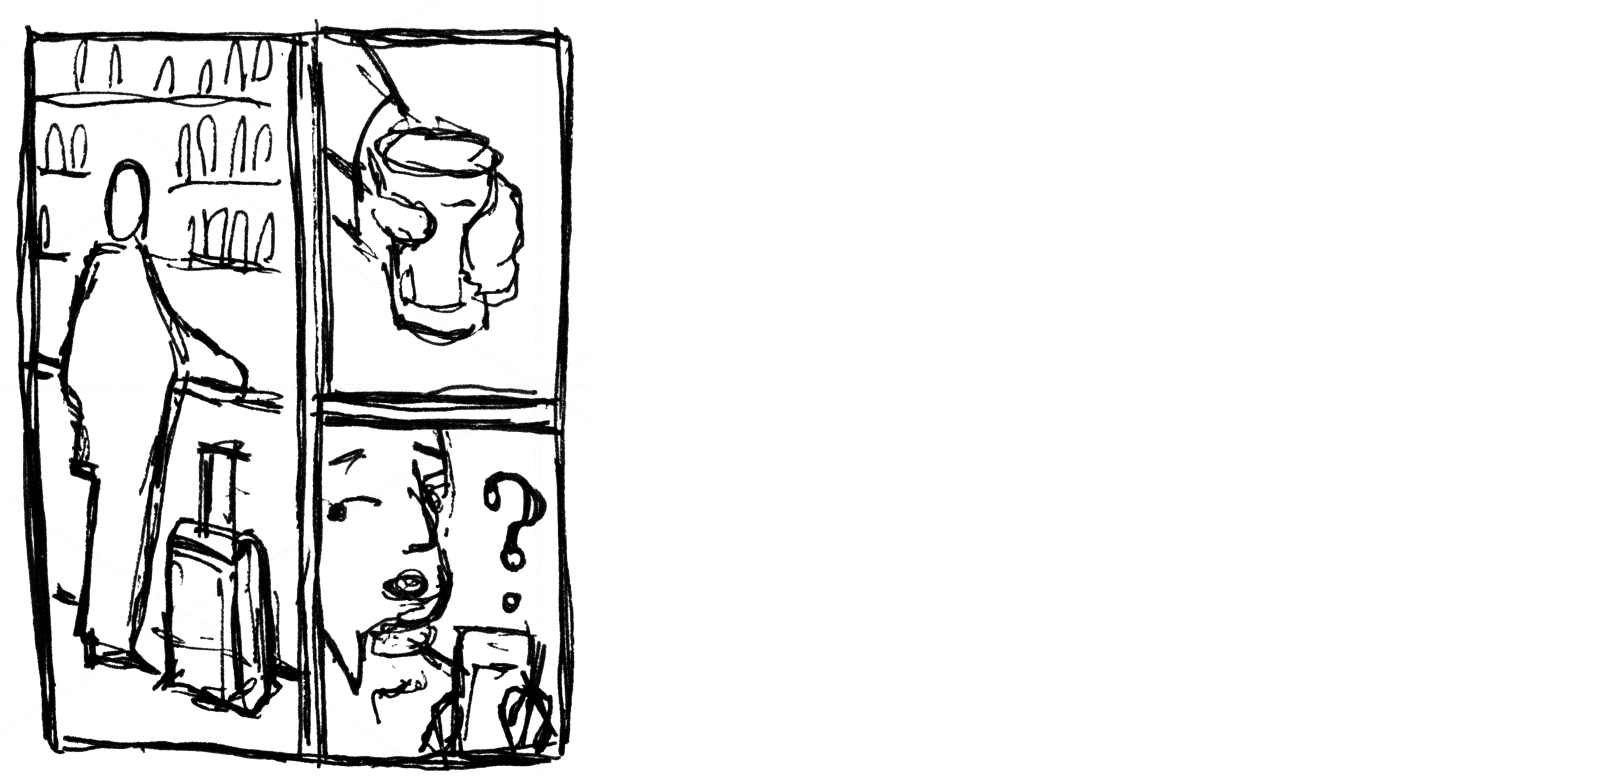 Final thumbnails for a script page